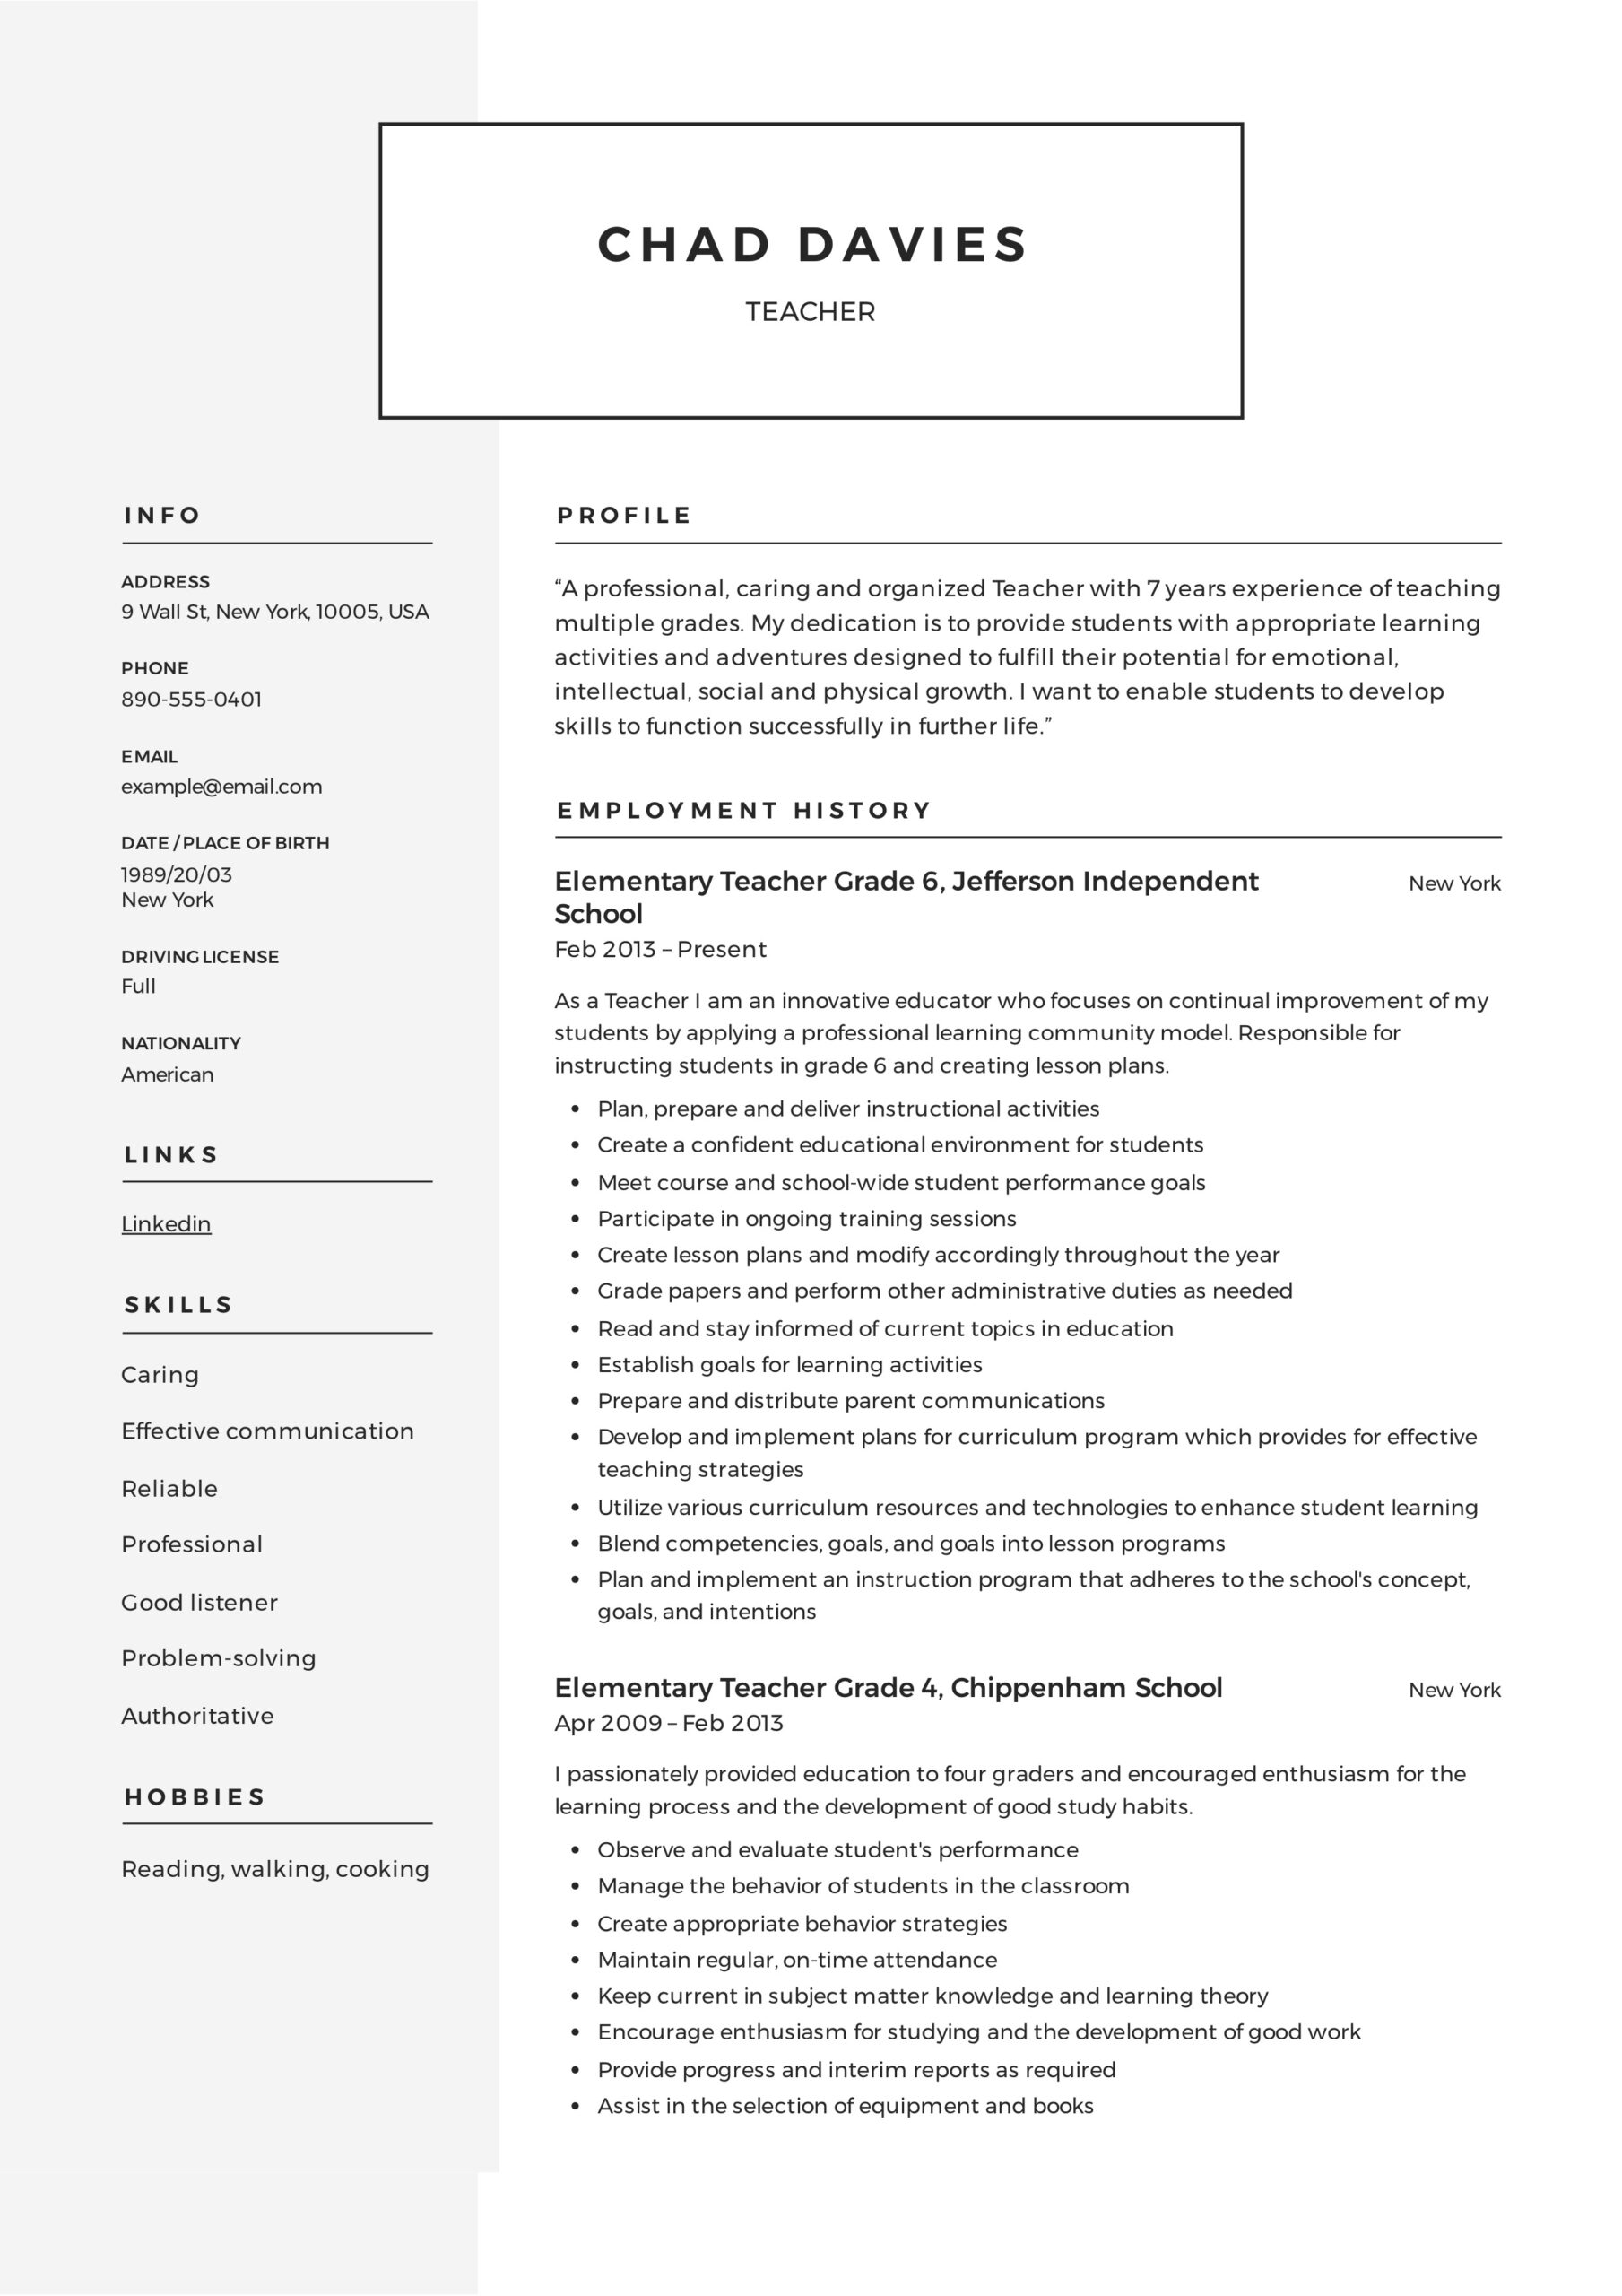 teacher resume writing guide examples pdf sample for applicant elementary free high Resume Sample Resume For Teacher Applicant